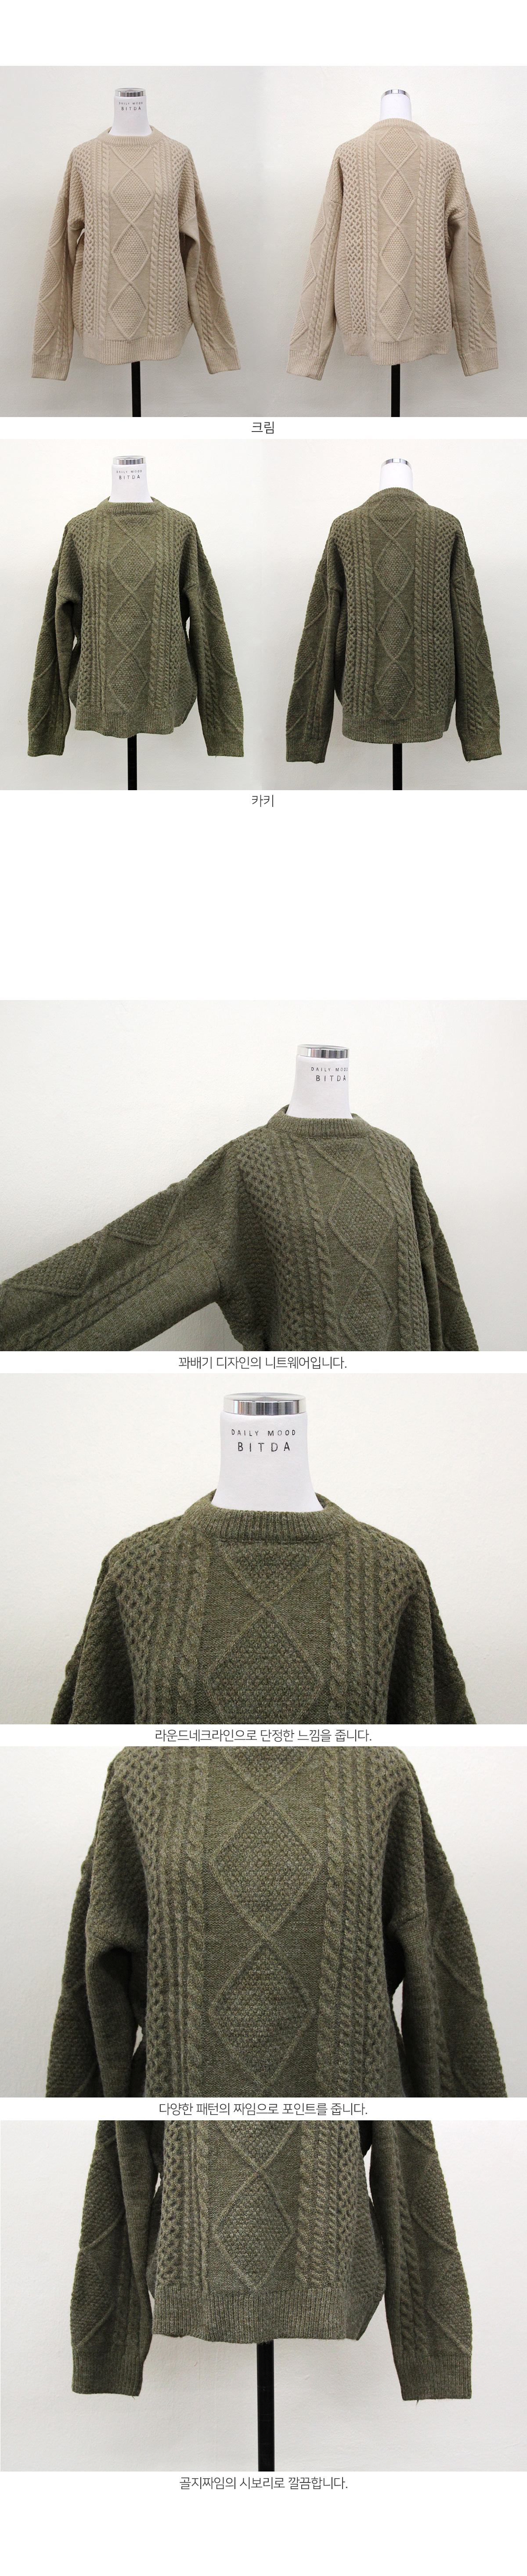 Cable round knit